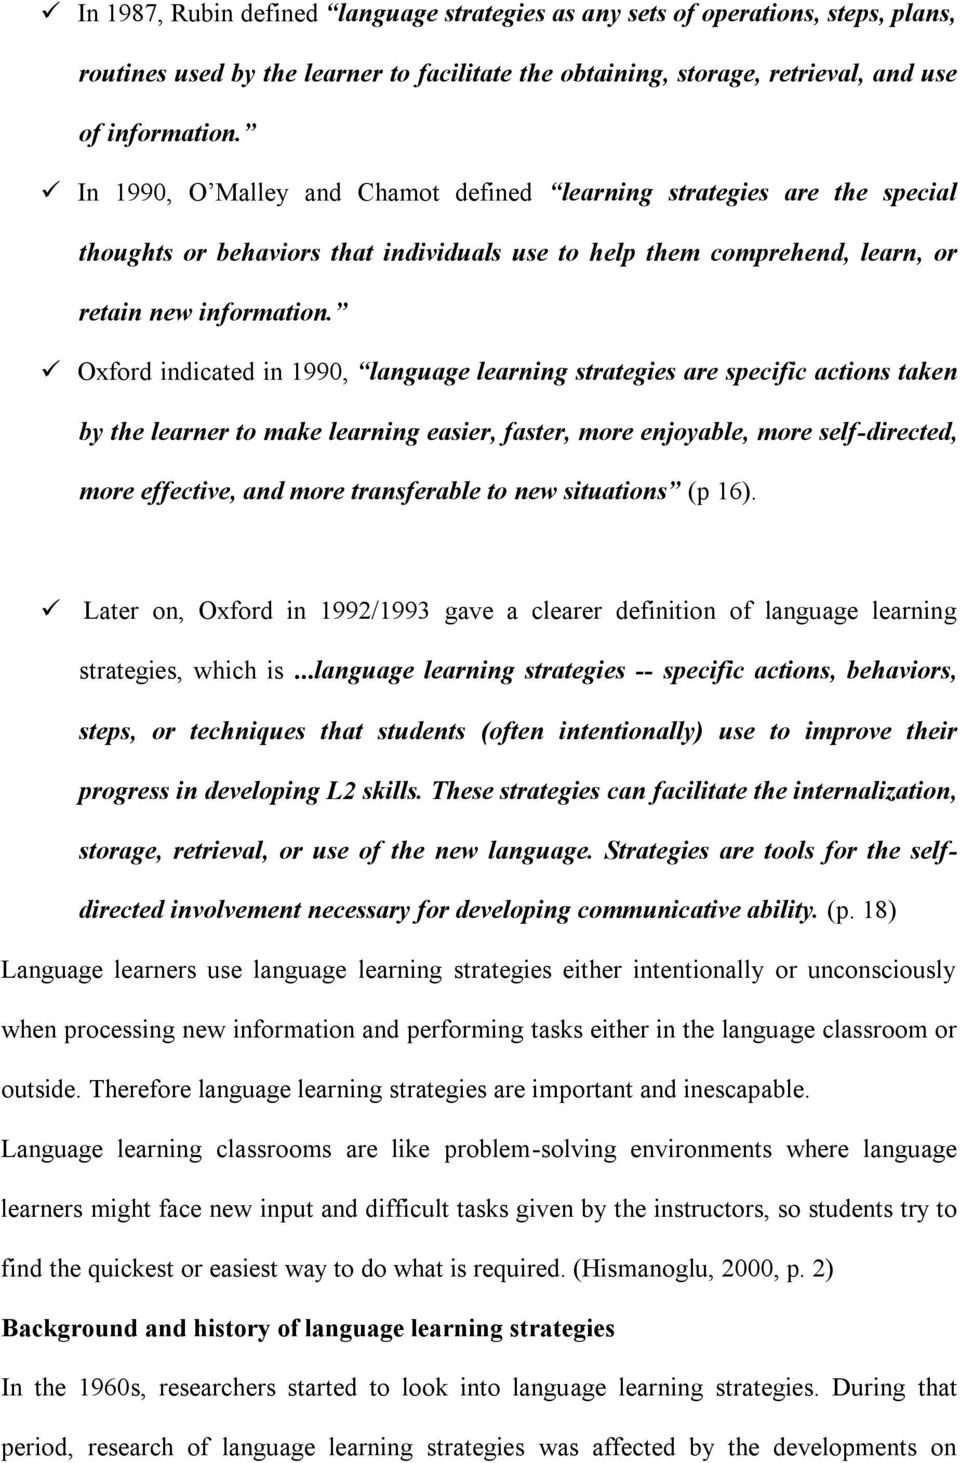 Oxford indicated in 1990, language learning strategies are specific actions taken by the learner to make learning easier, faster, more enjoyable, more self-directed, more effective, and more